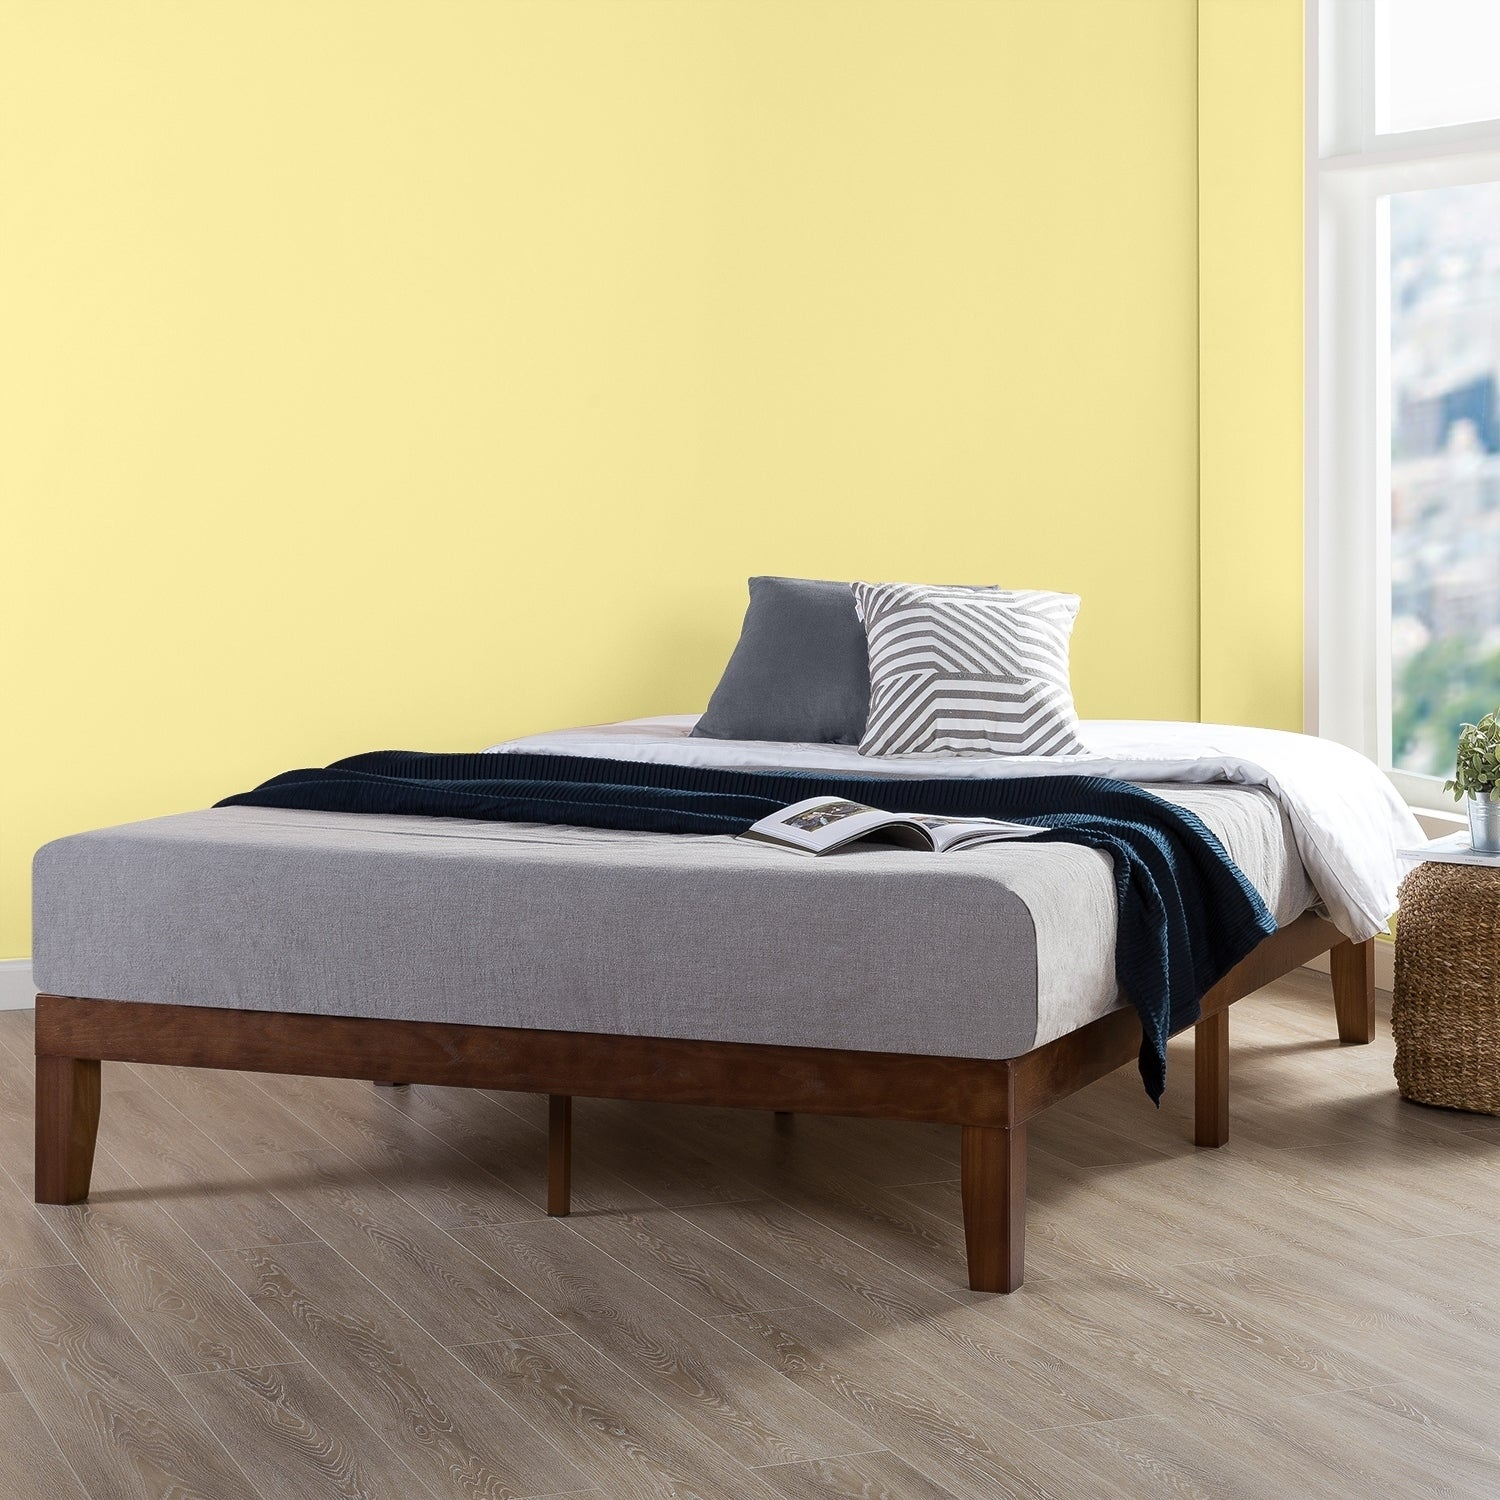 Twin Size 12 Inch Classic Solid Wood Platform Bed Frame, Antique Espresso - Crown Comfort (Wood - Casual/Traditional/Modern & Contemporary - Twin)